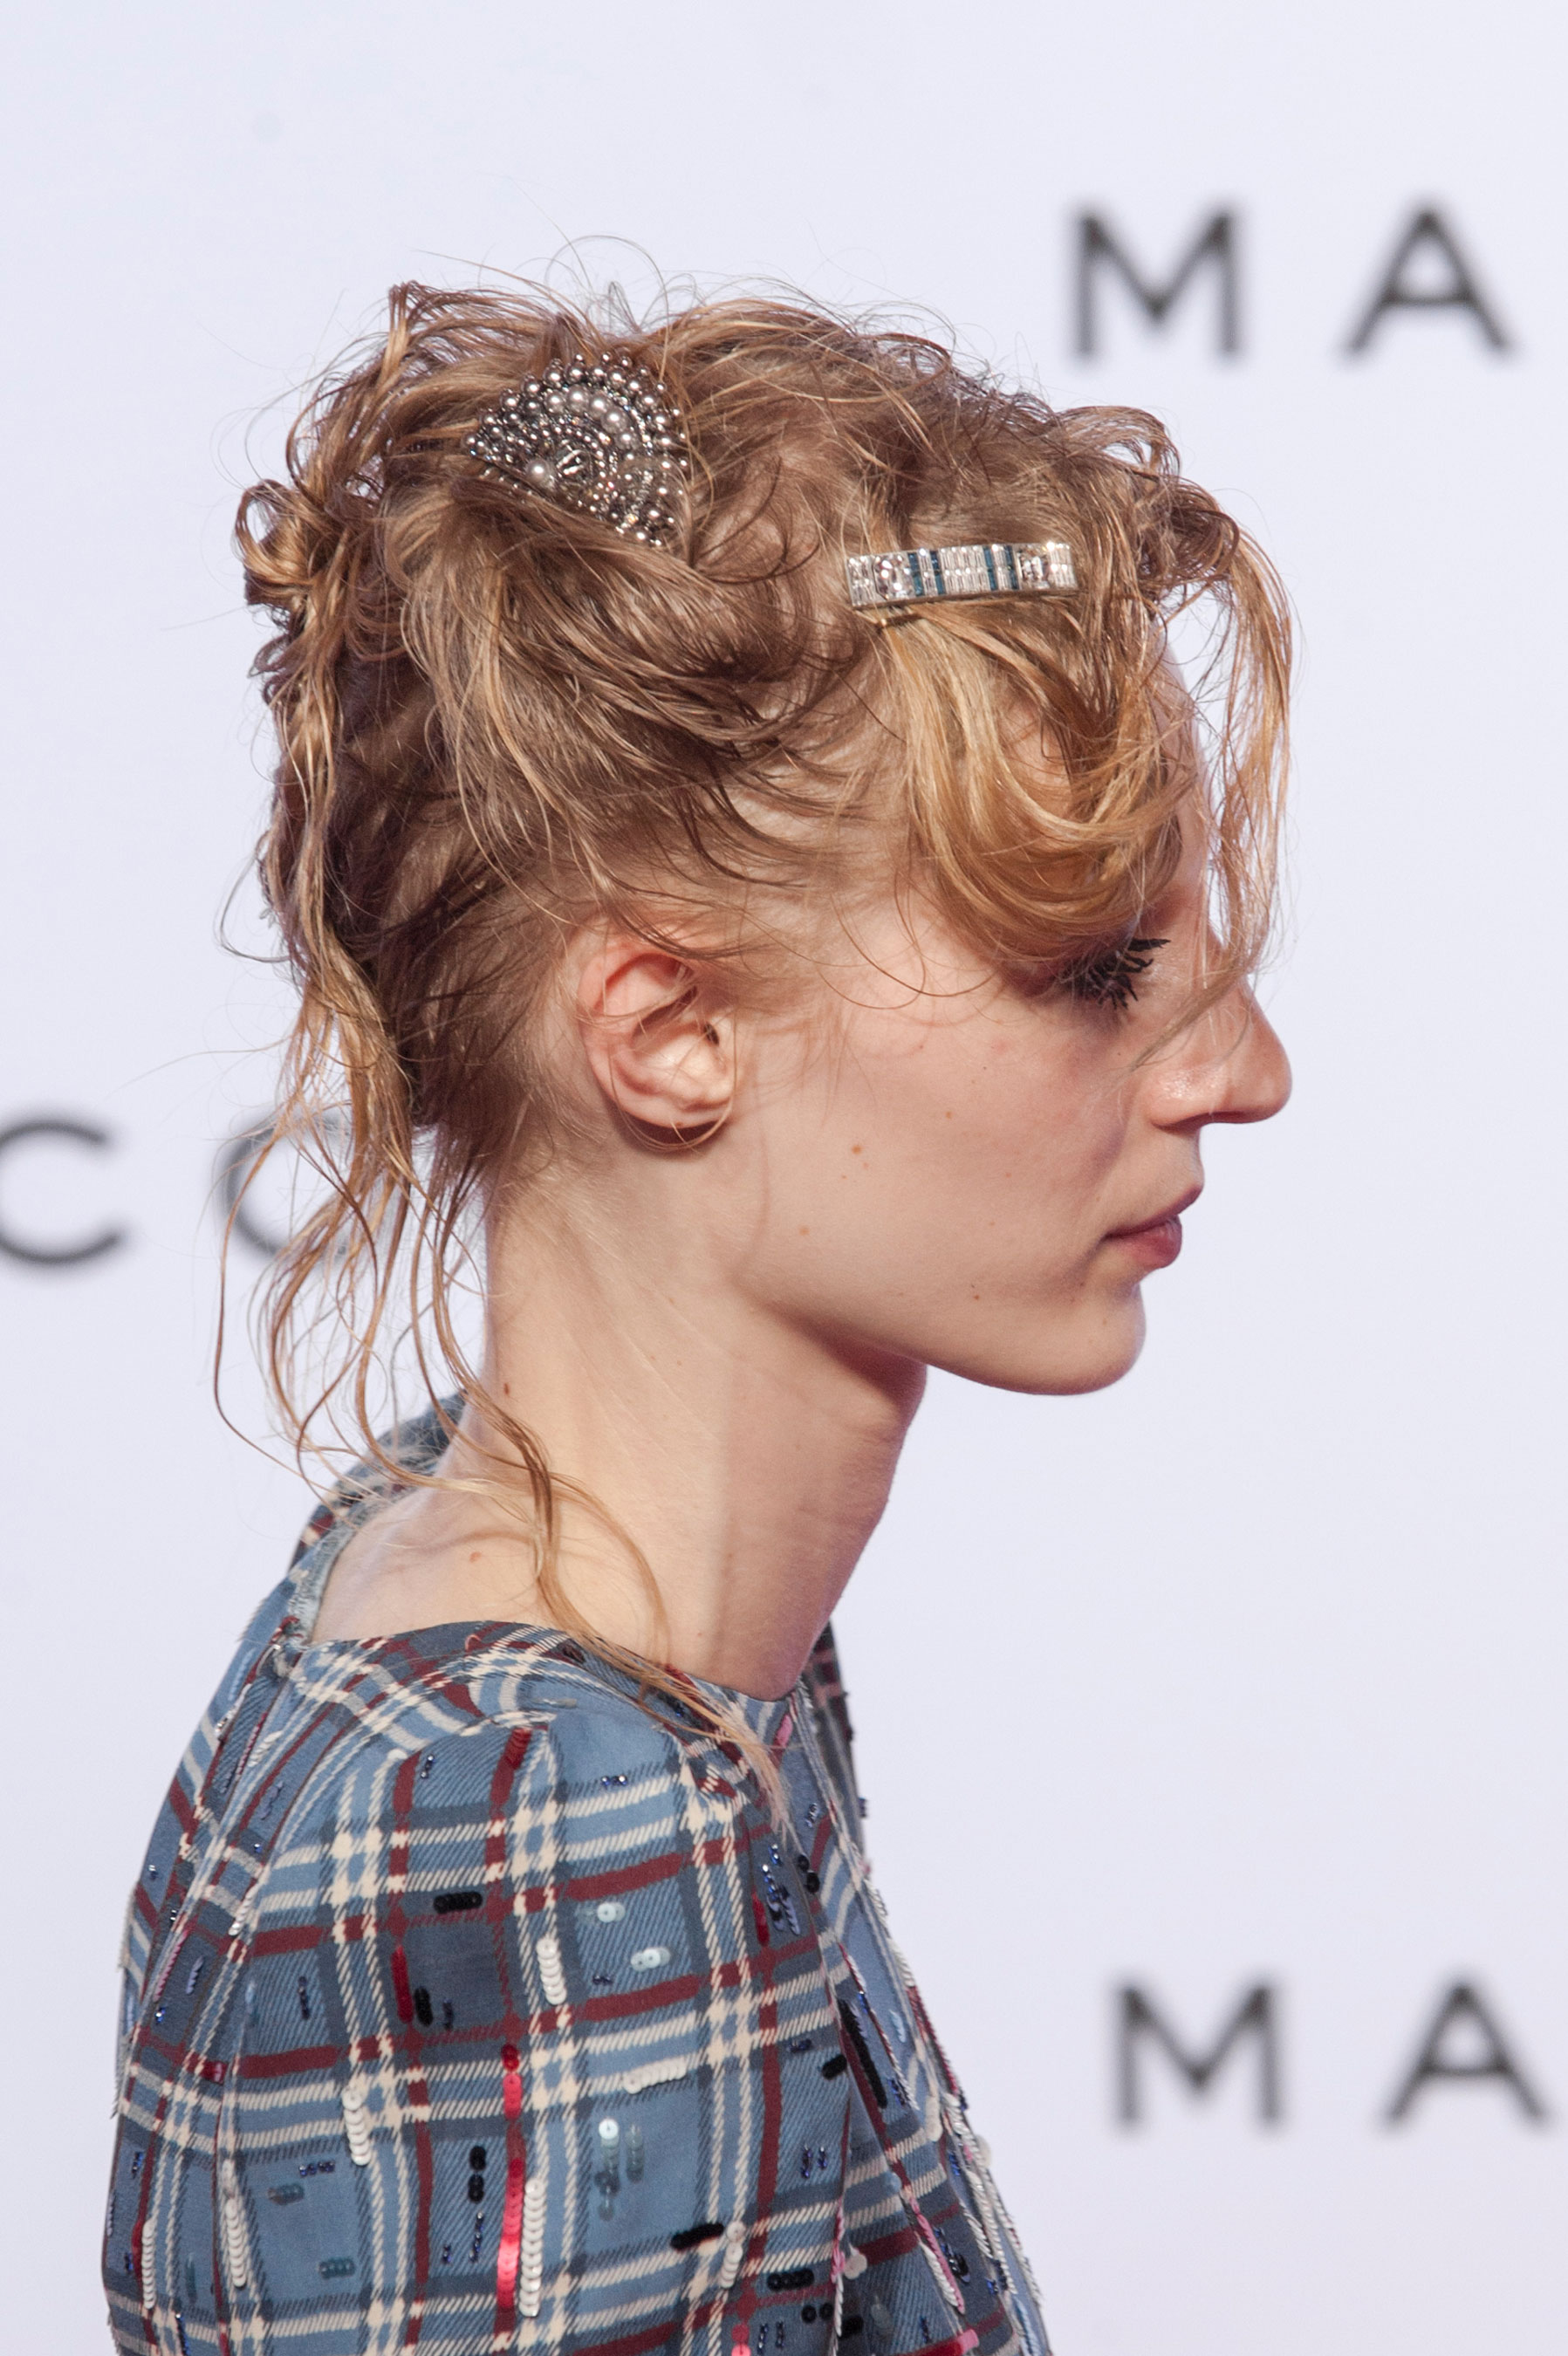 marc-jacobs-spring-2016-runway-beauty-fashion-show-the-impression-13